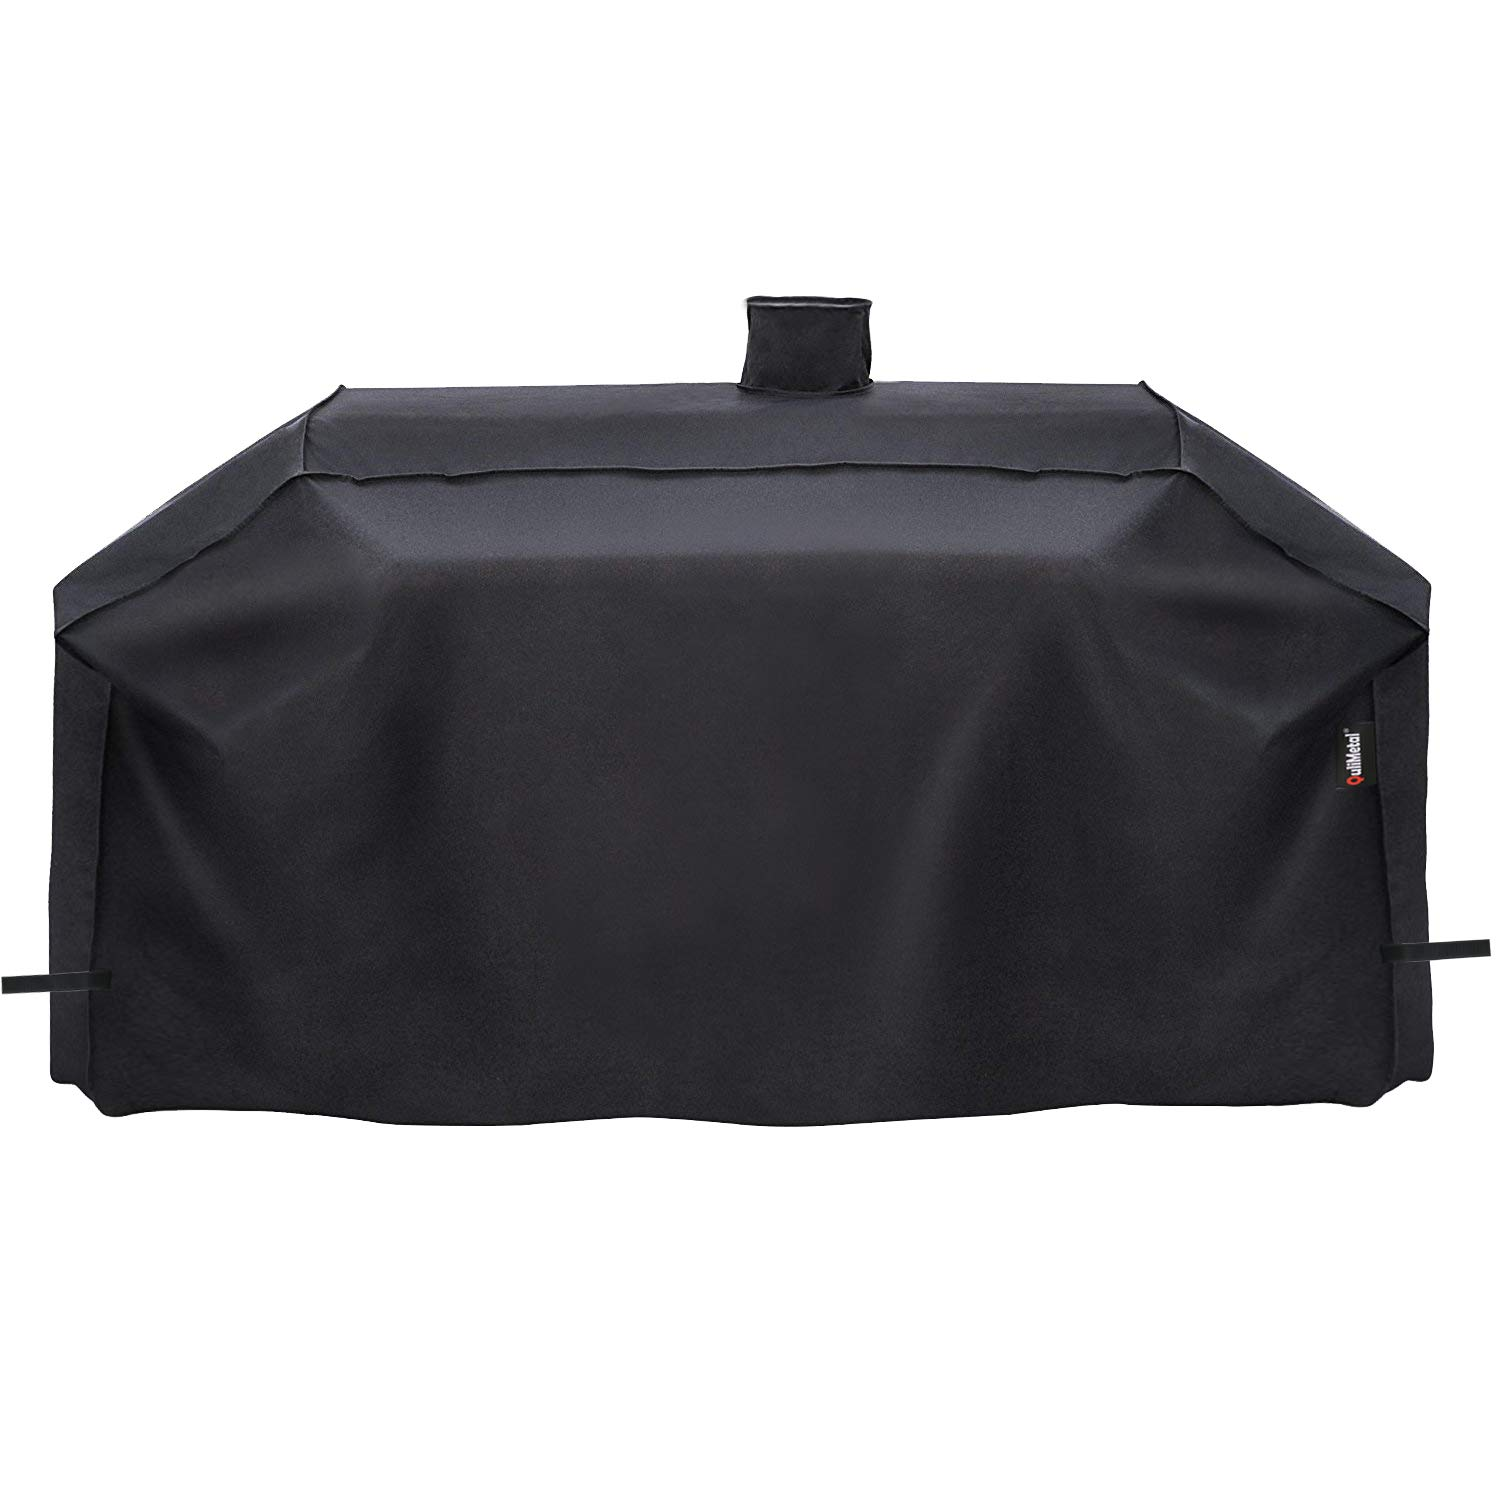 QuliMetal Heavy Duty GC7000 Grill Cover for Pit Boss Memphis Ultimate Grill Cover and Smoke Hollow PS9900 DG1100S 4in1 Combo Grill Cover, All Weather Protection, 79 Inches BBQ Barbecue Cover by QuliMetal